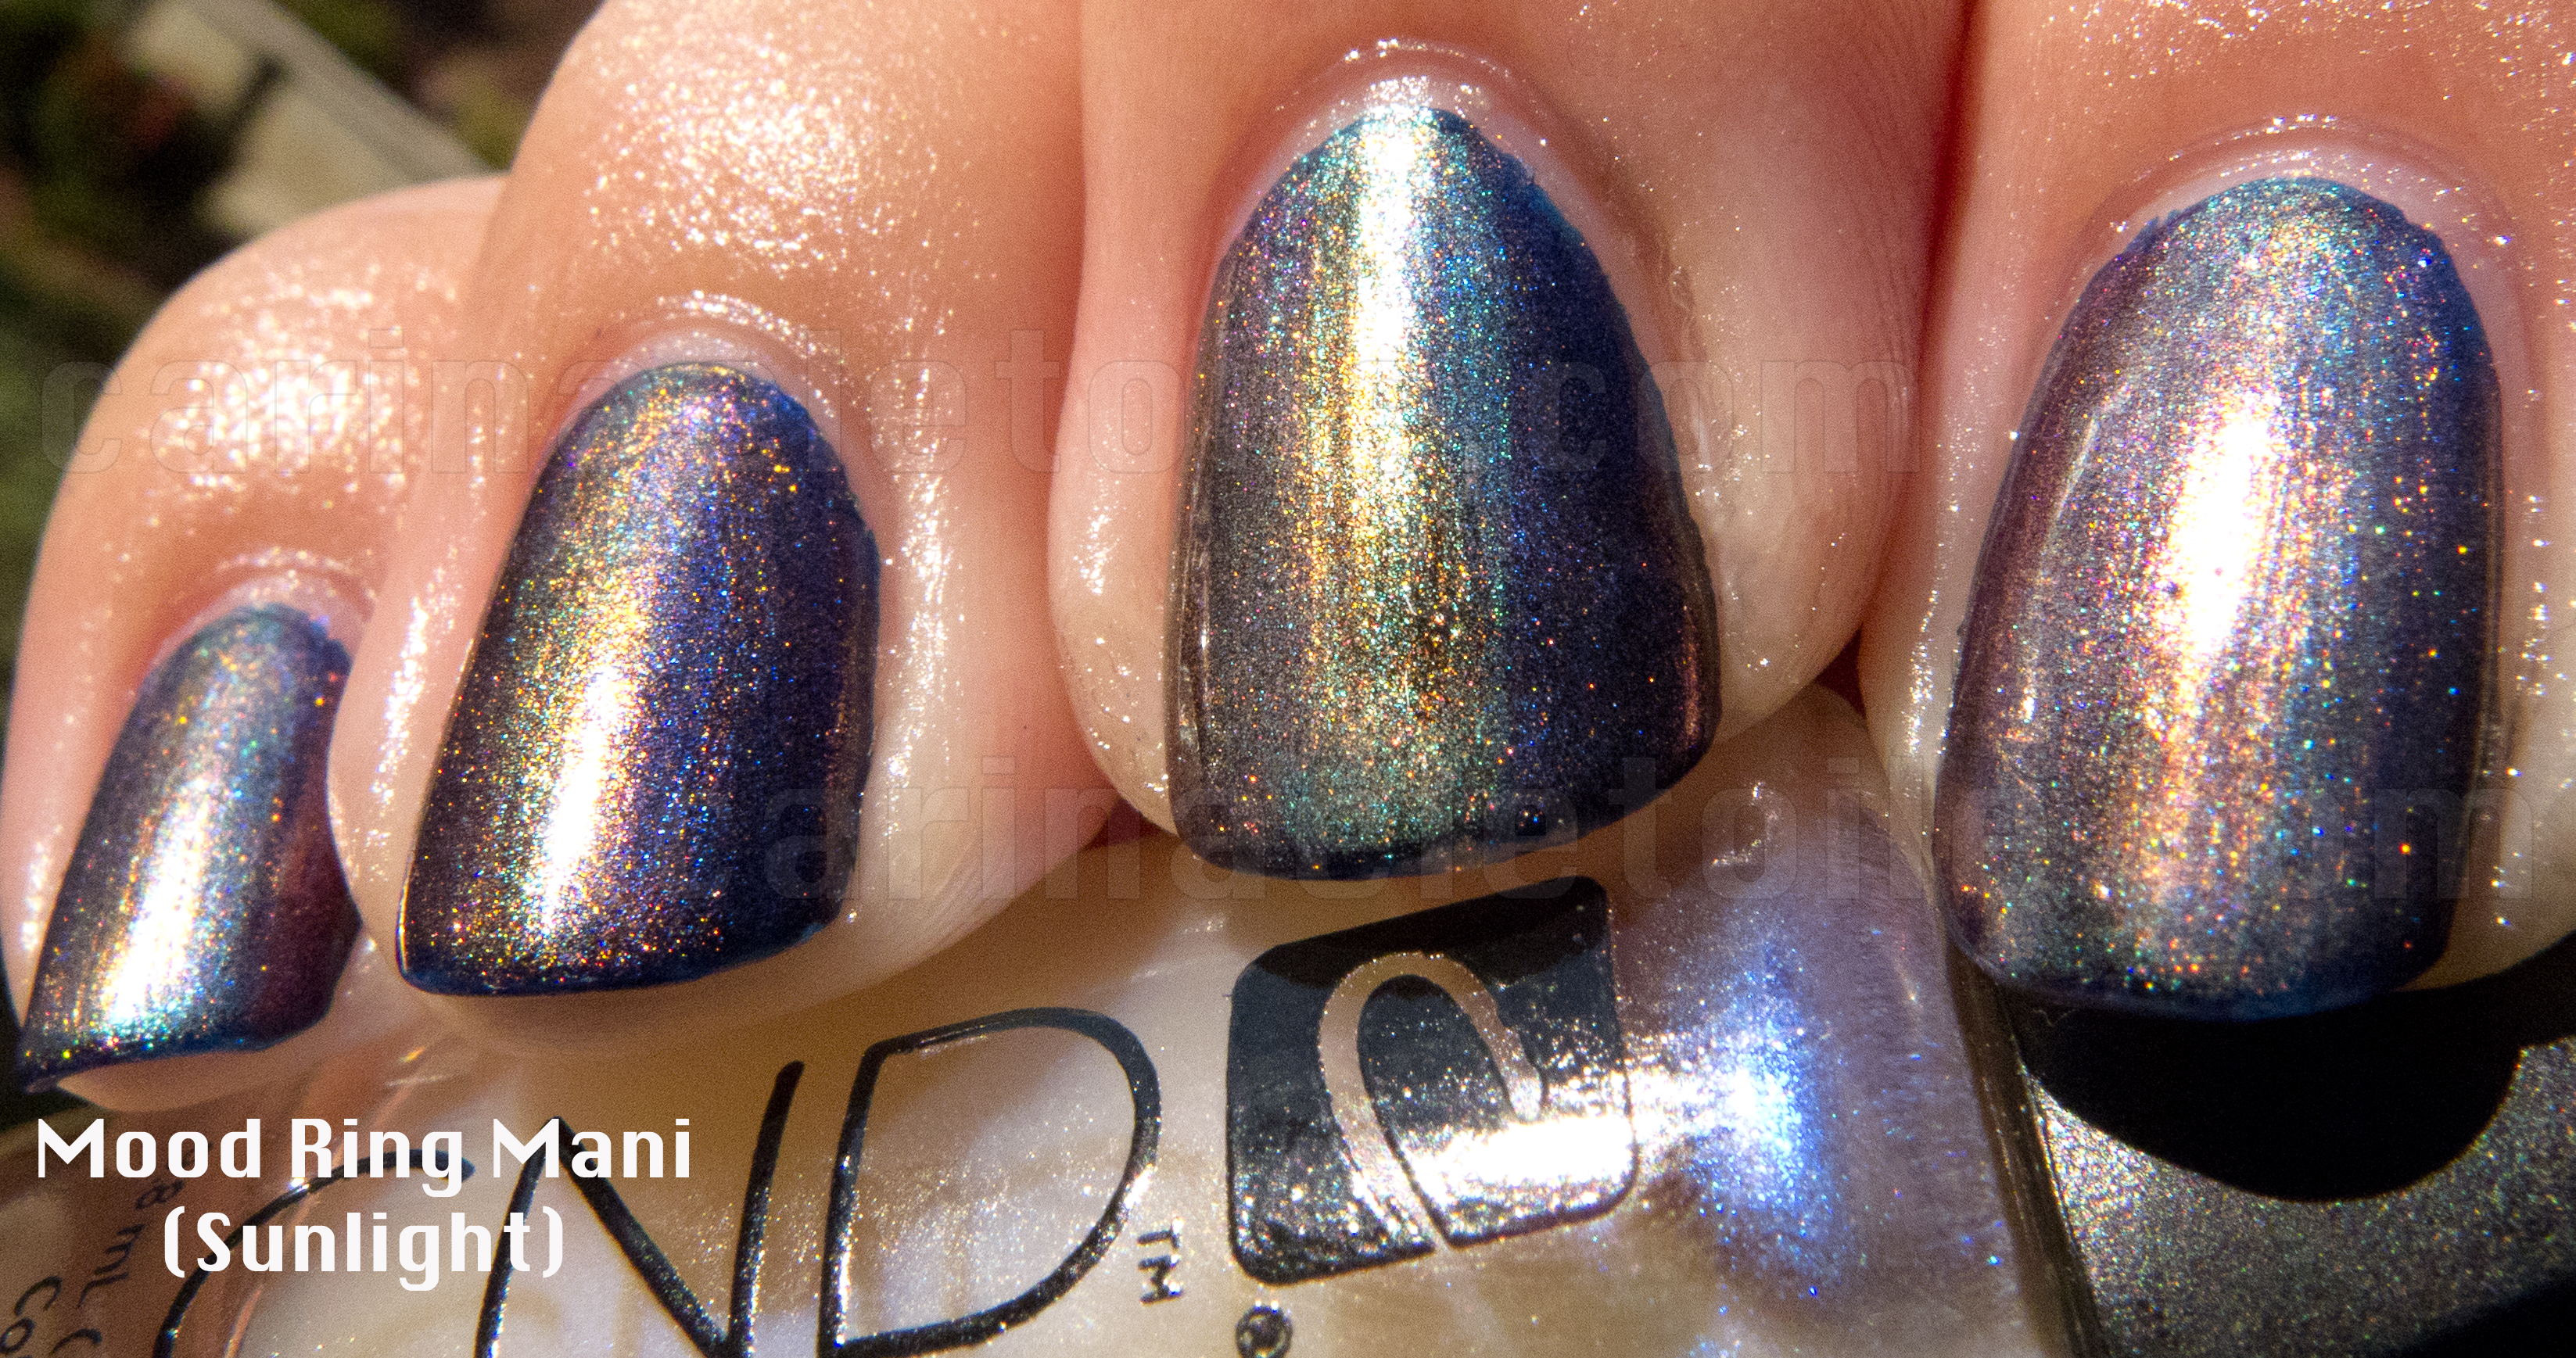 CND Mood Ring Mani Sunlight